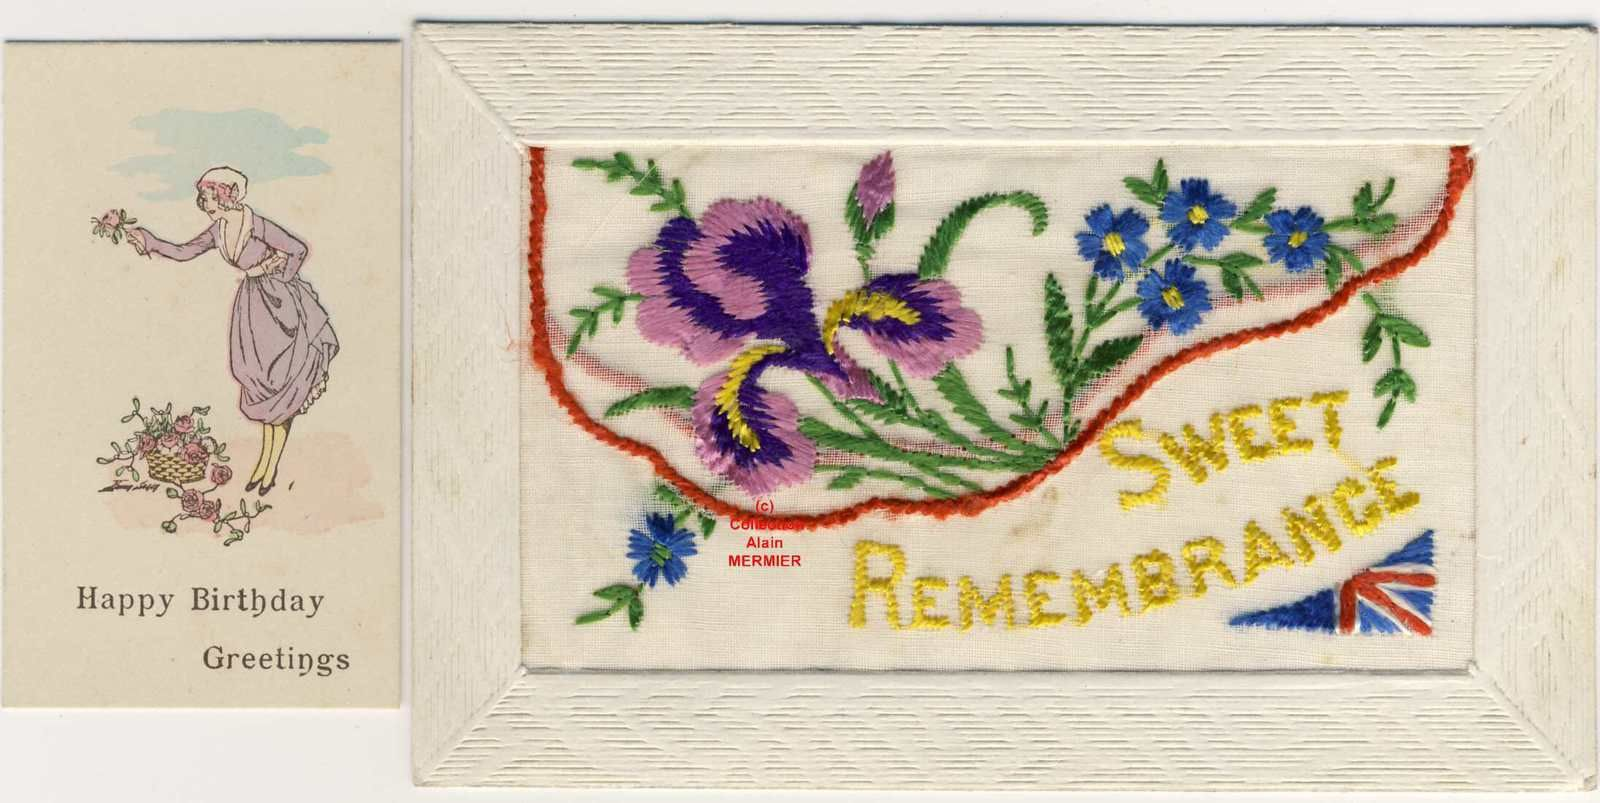 Iris -2097- Brodée. Sweet remembrance. France. 1918.